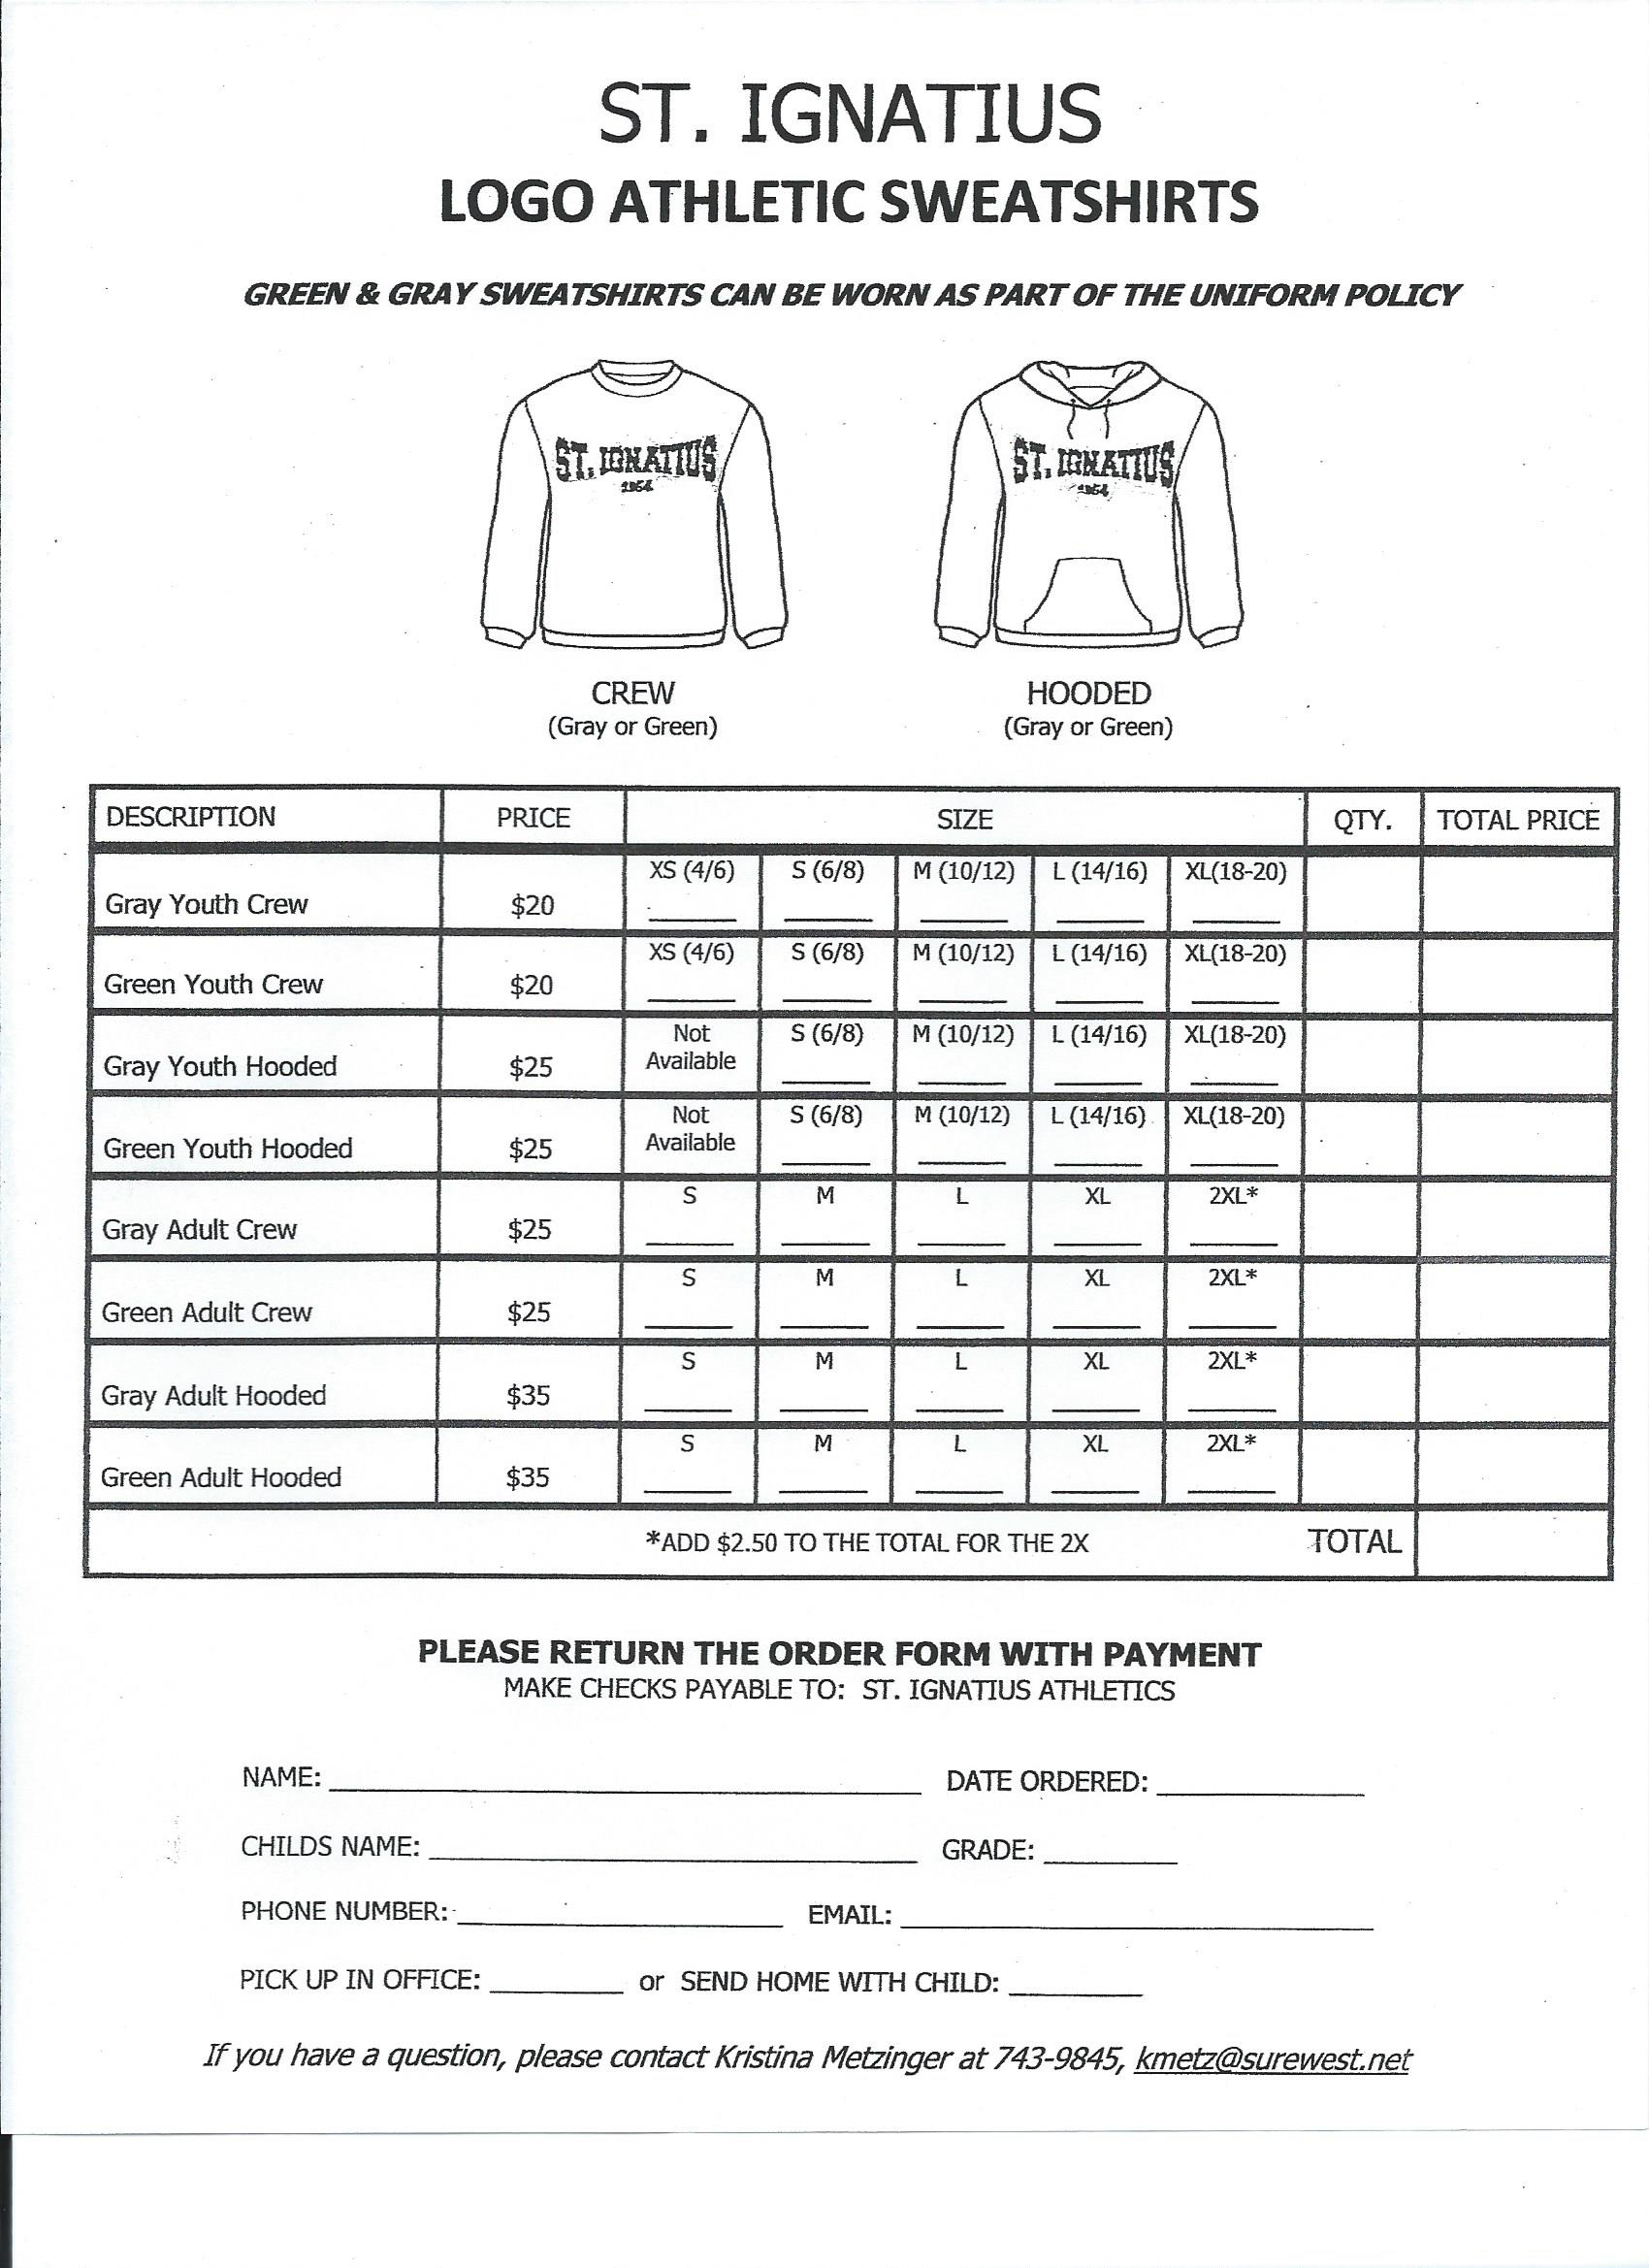 Logo Wear Sweatshirts - St. Ignatius Parish School